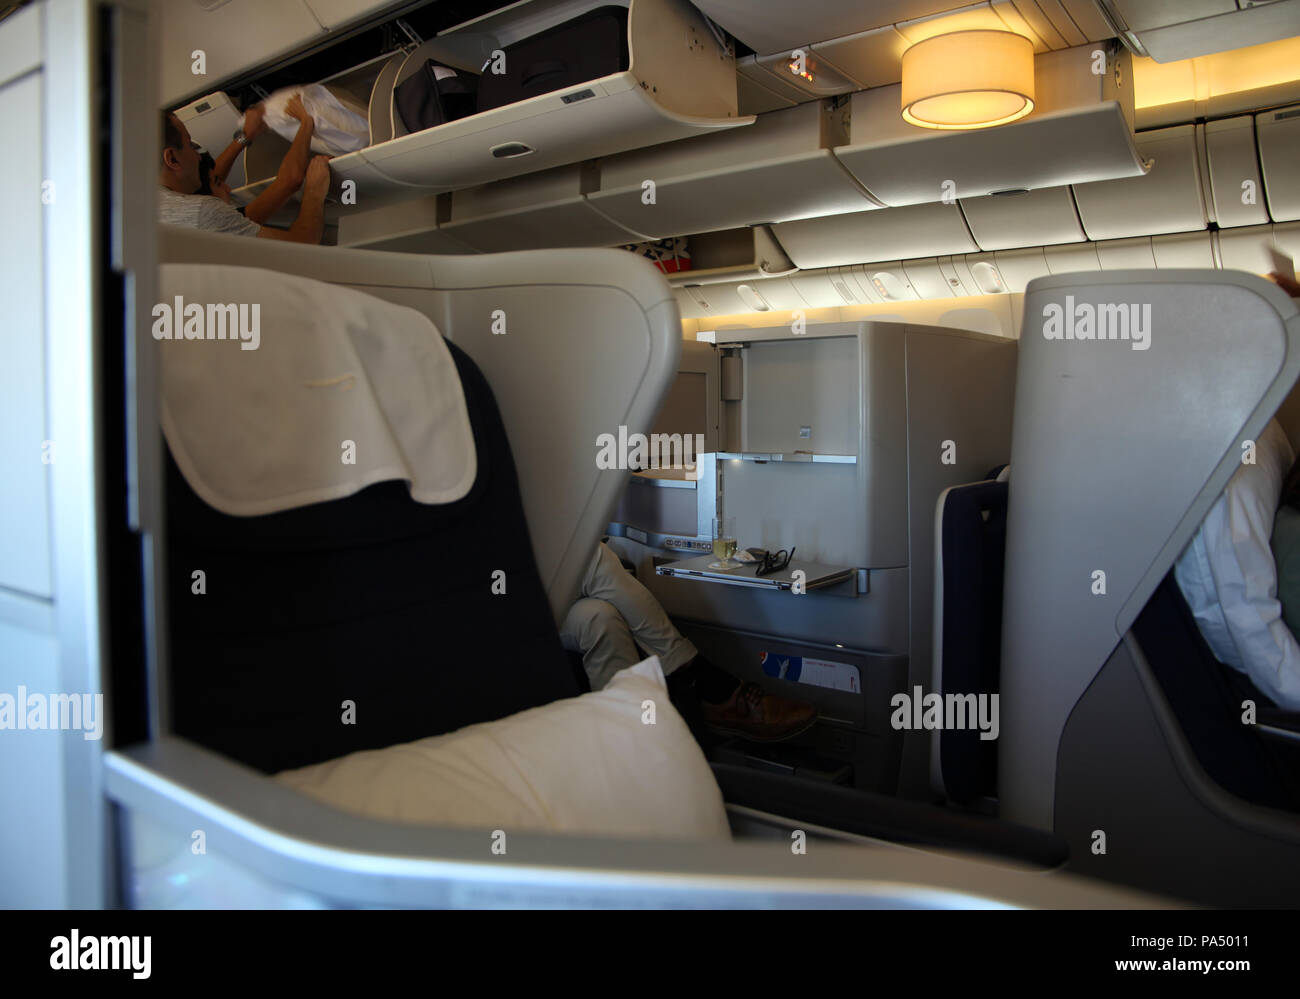 on board a BA flight, the view of club class (business class) seats on board a Boeing 777, UK - Stock Image